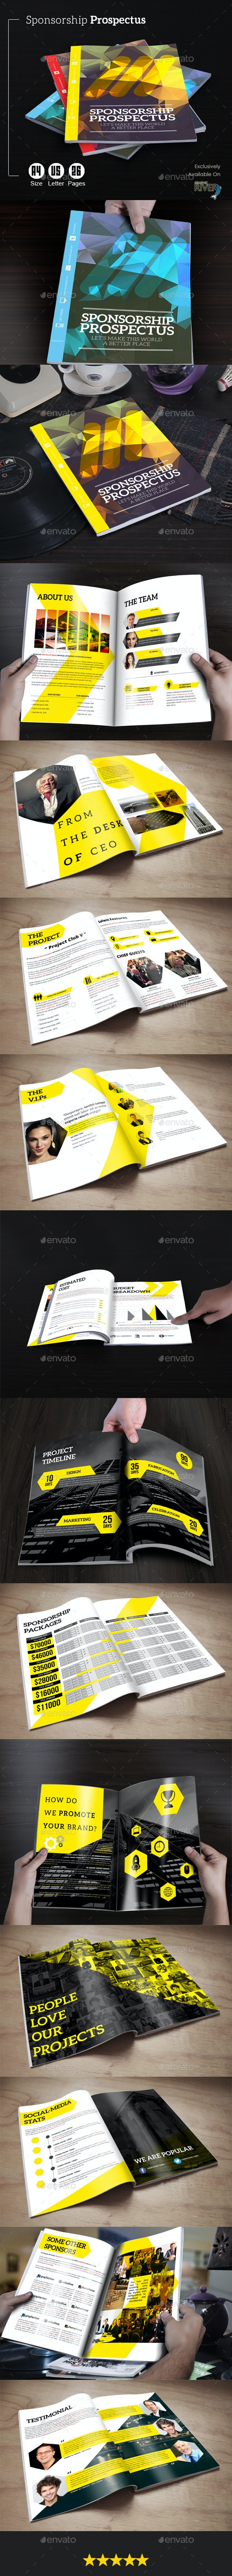 Sponsorship Prospectus - Proposals & Invoices Stationery